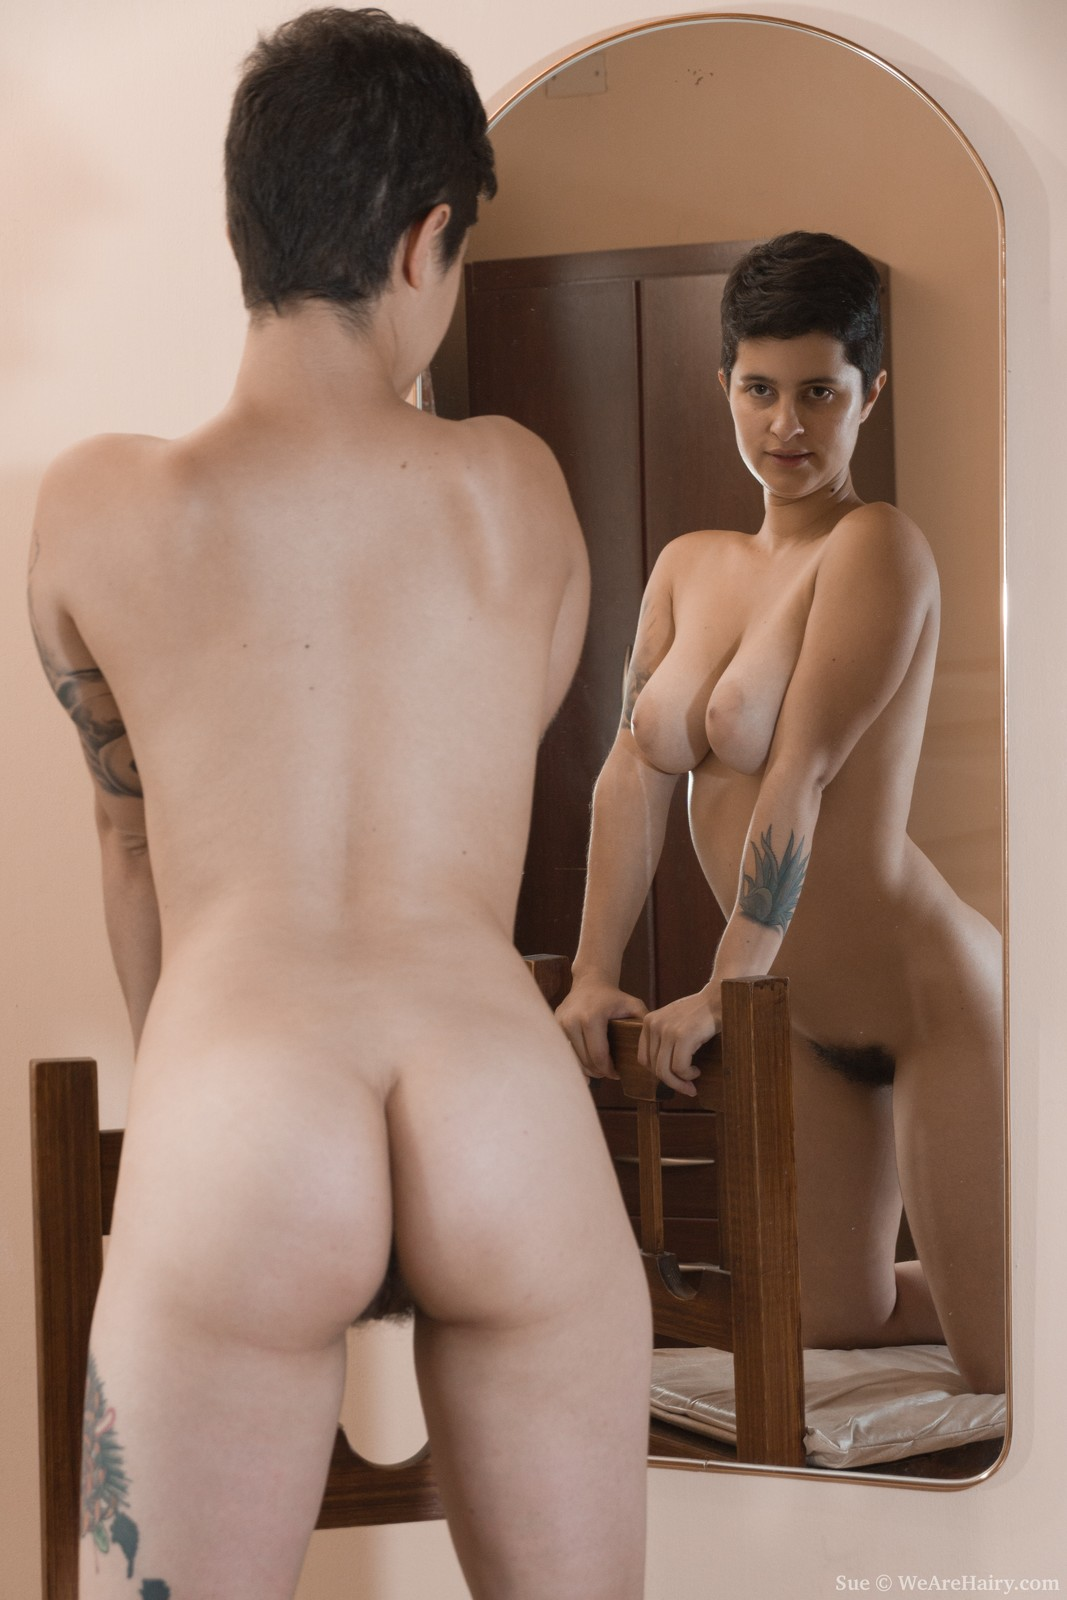 girls posing nude in mirror